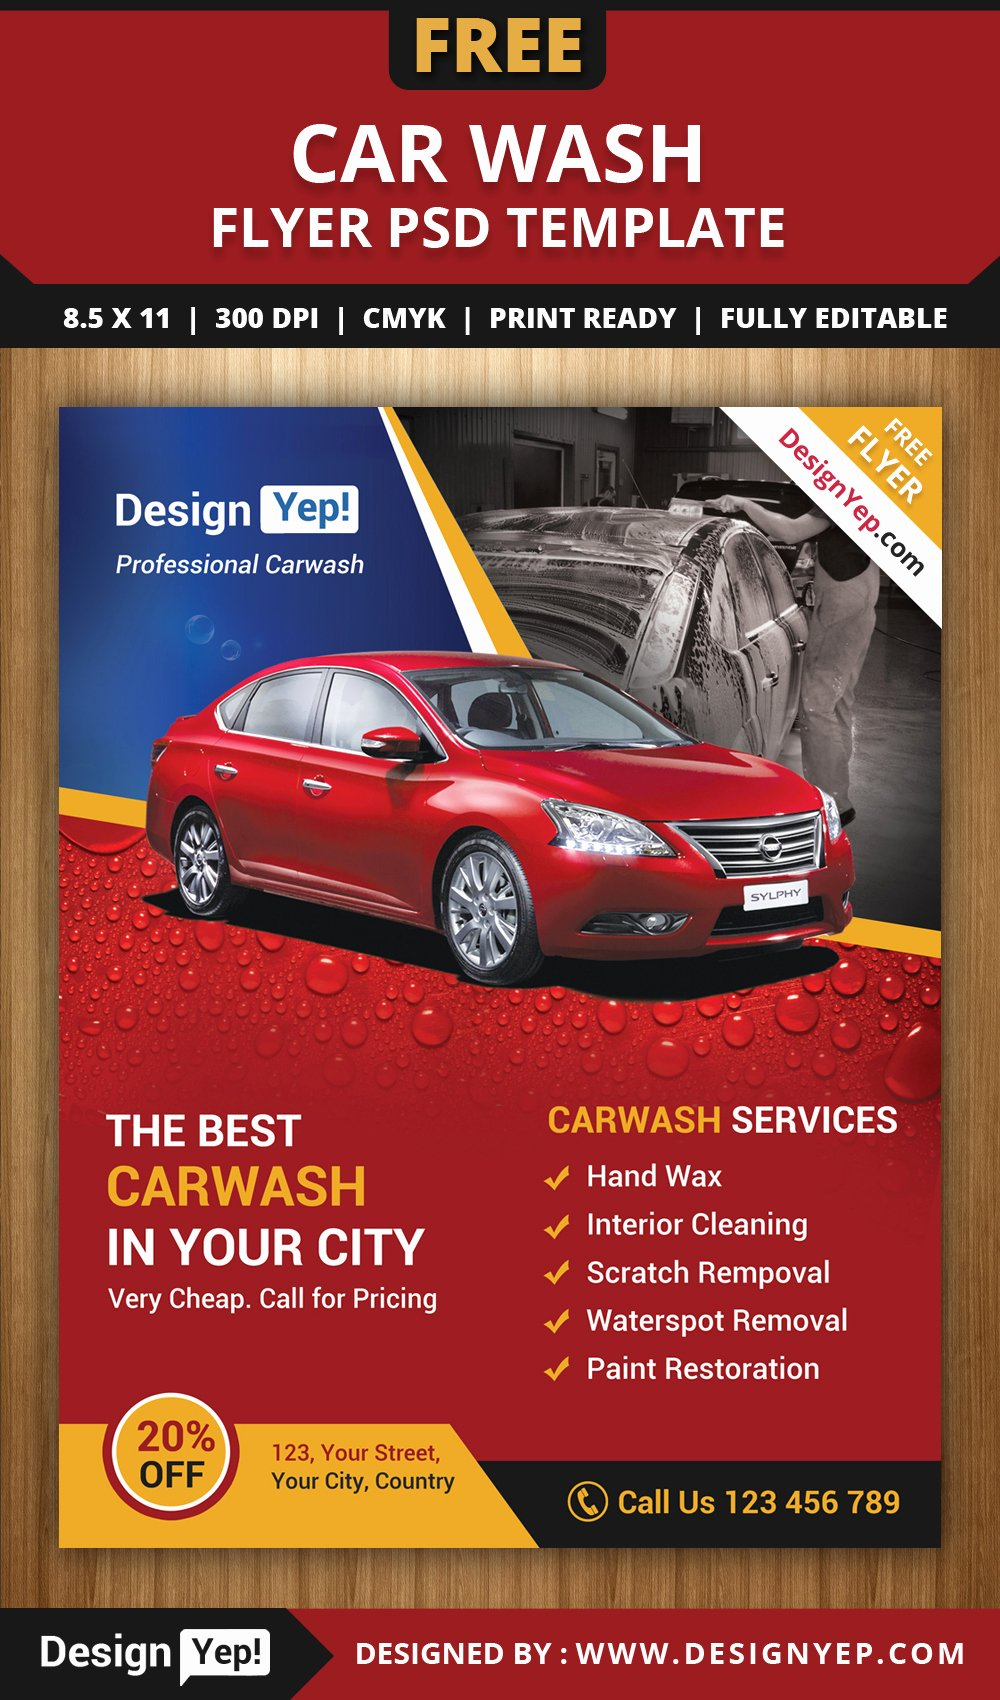 Car Wash Flyer Template Beautiful Free Car Wash Flyer Psd Template Designyep